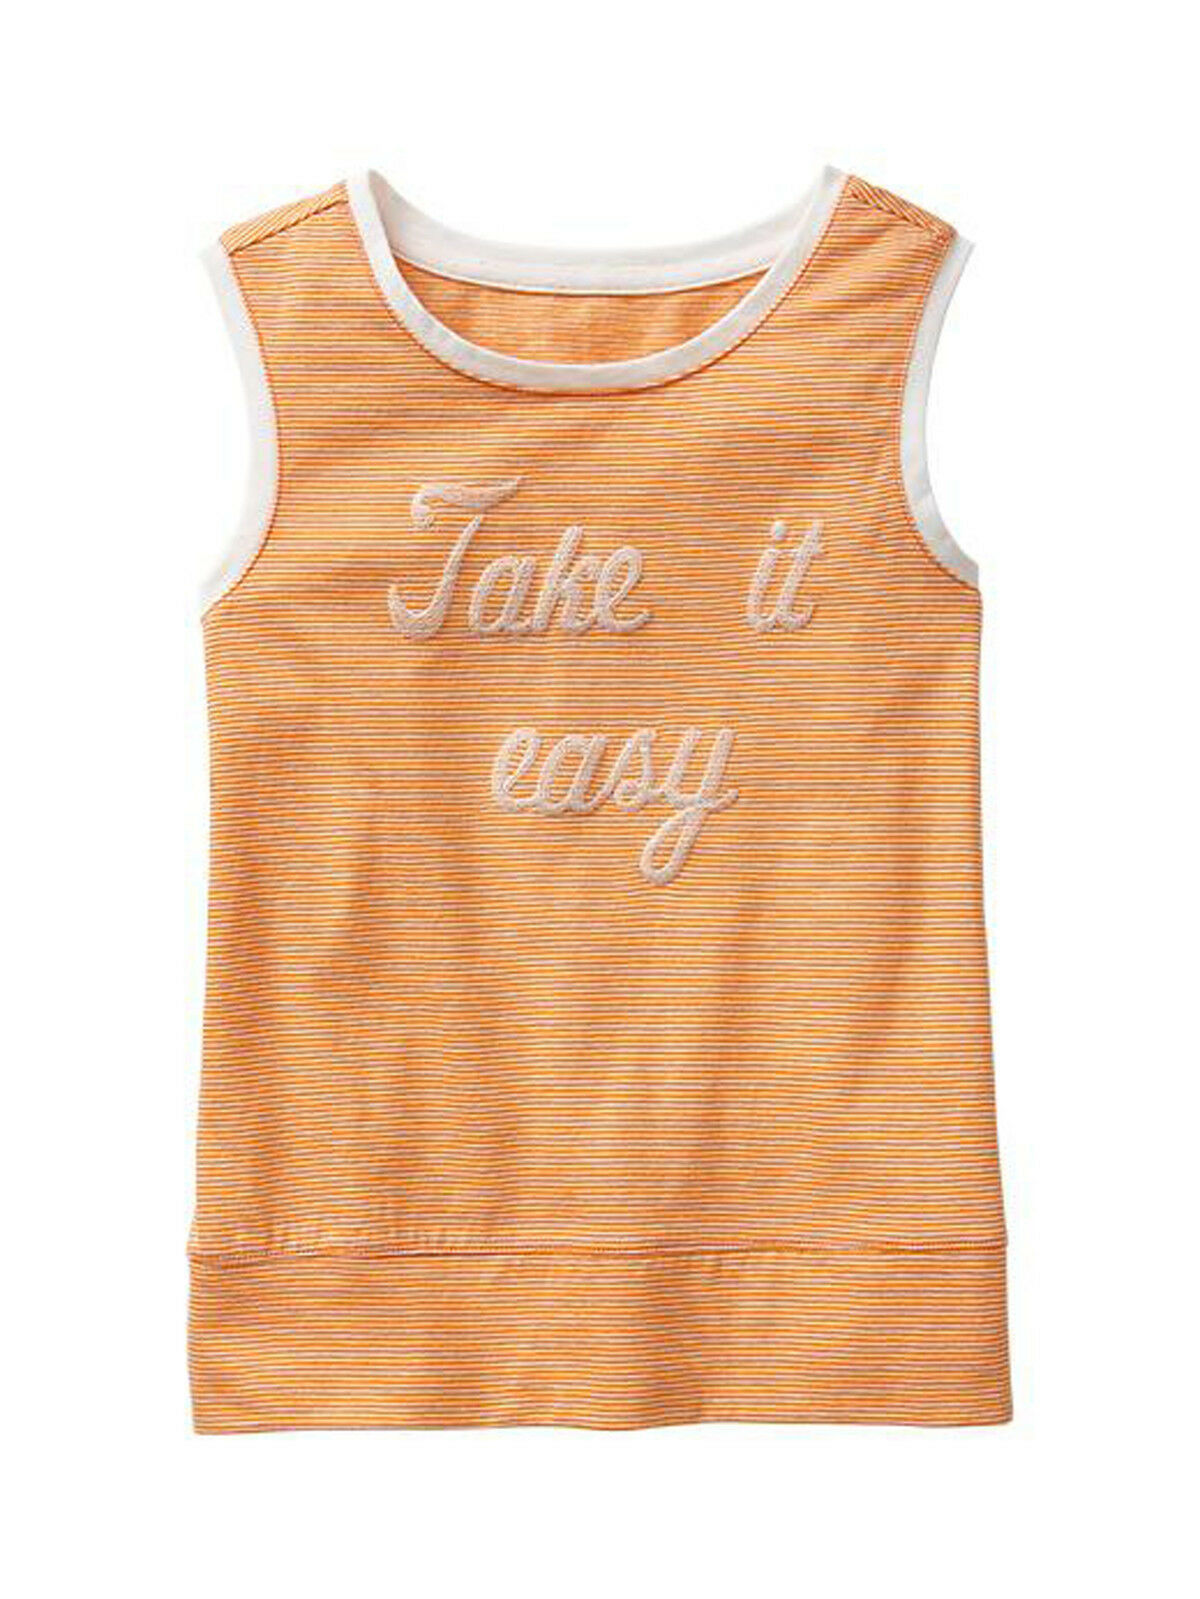 Primary image for GAP Kids Girls Tank Top Sz  XL 12 Graphic Orange Thin Stripe Sleeveless Trim New